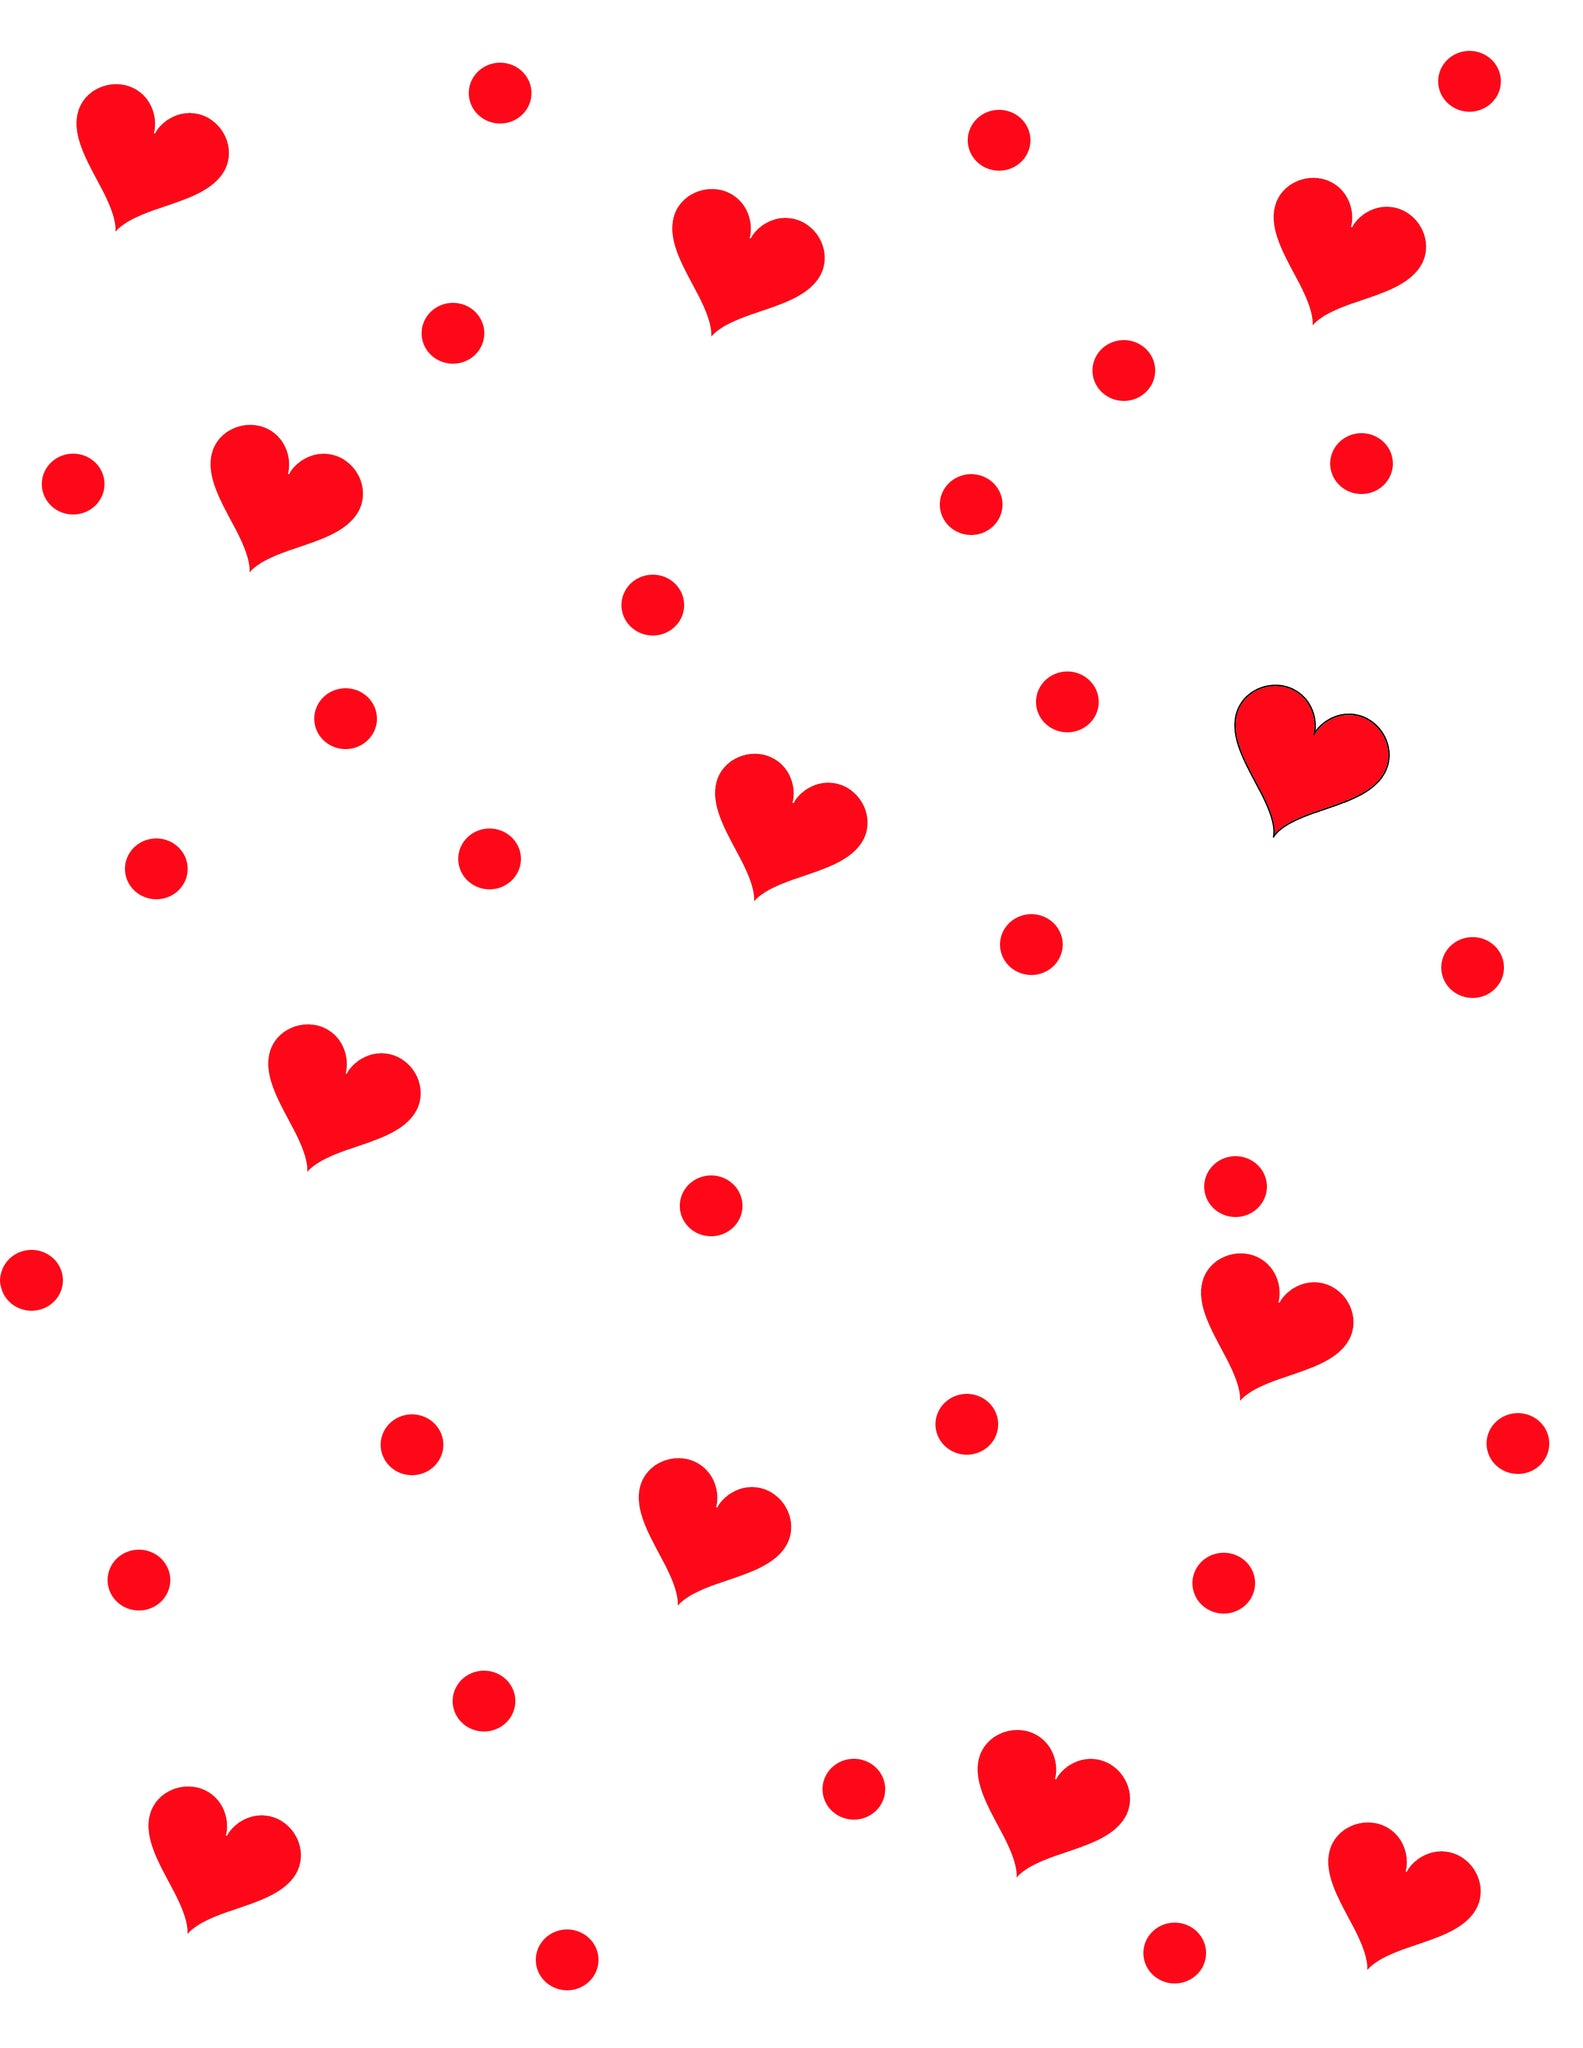 Color of Polka Hearts - Pera